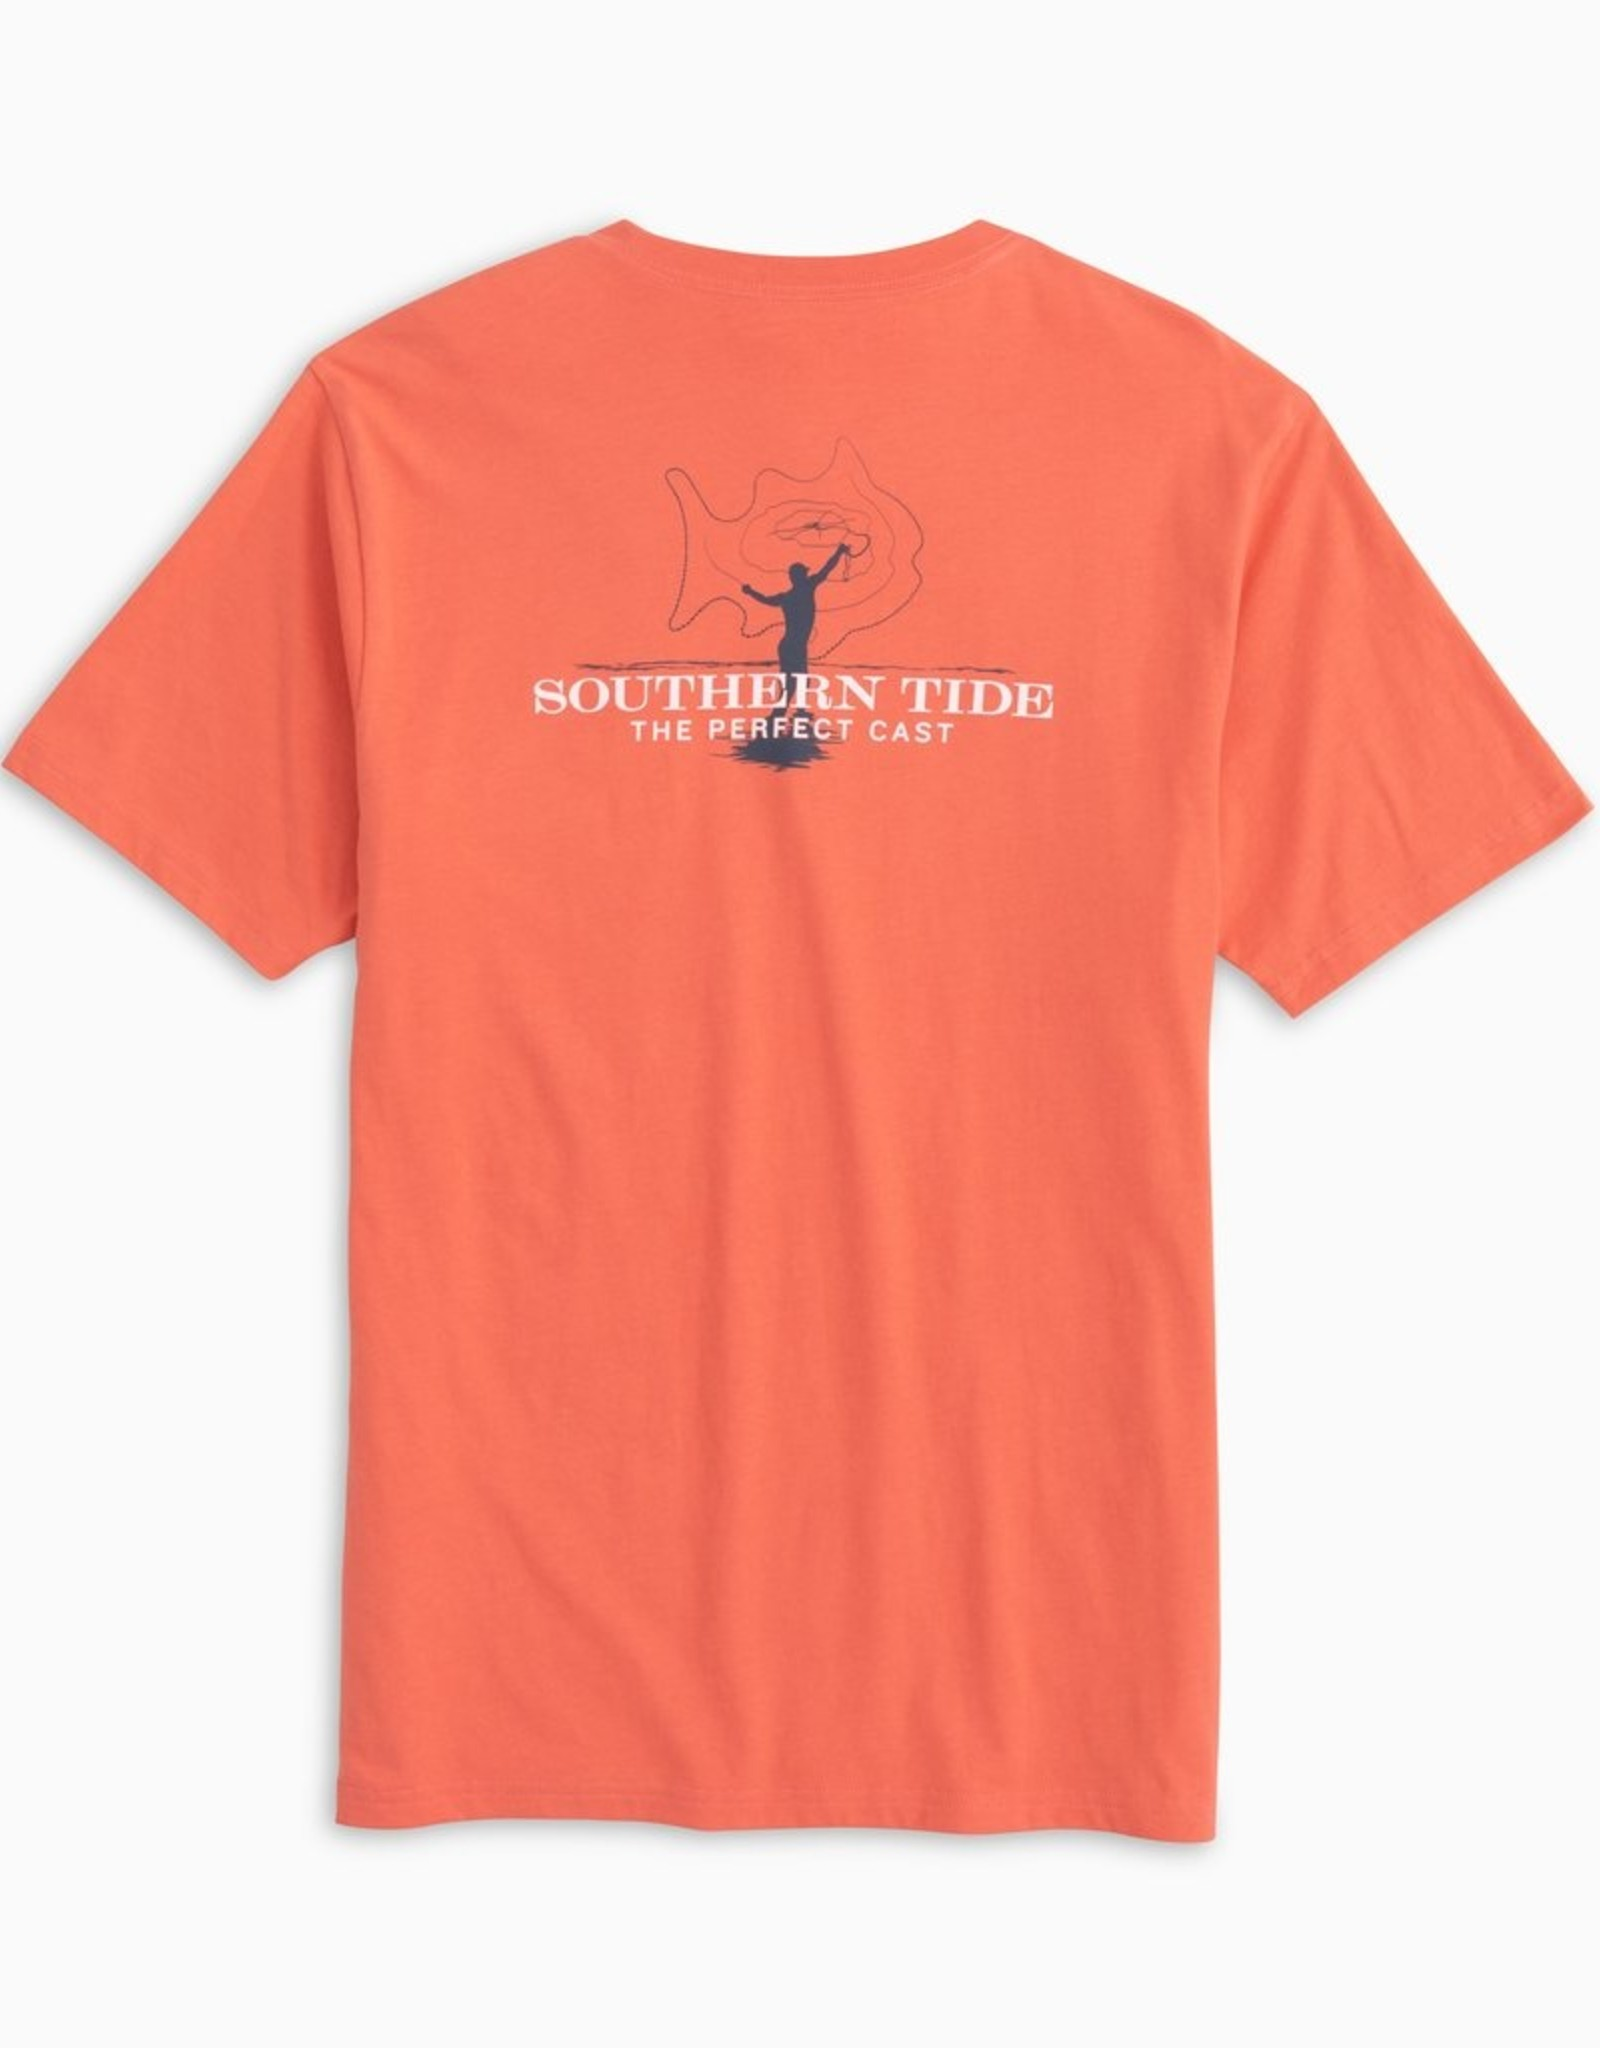 Southern Tide Perfect Cast Tee